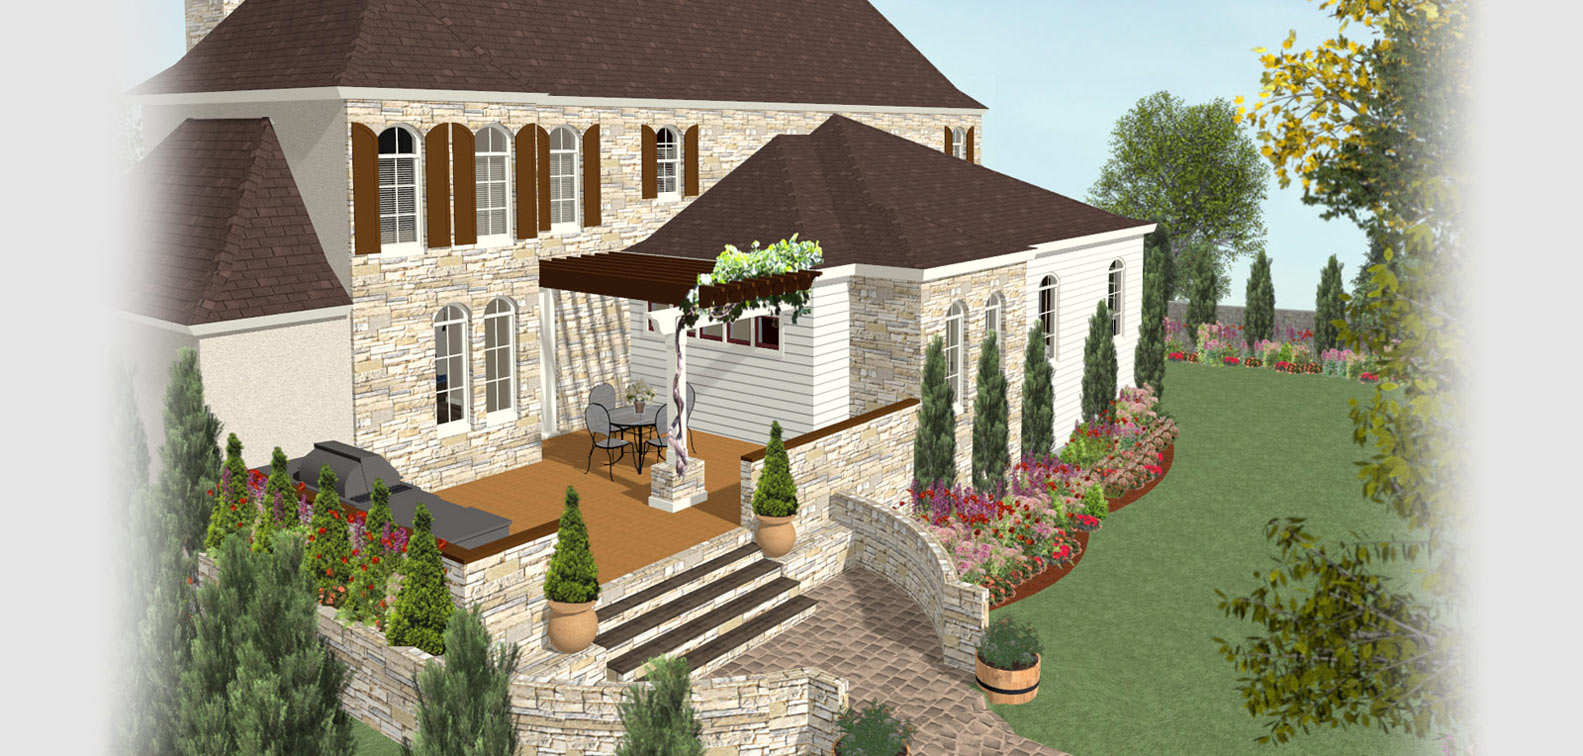 home designer software for deck and landscape software